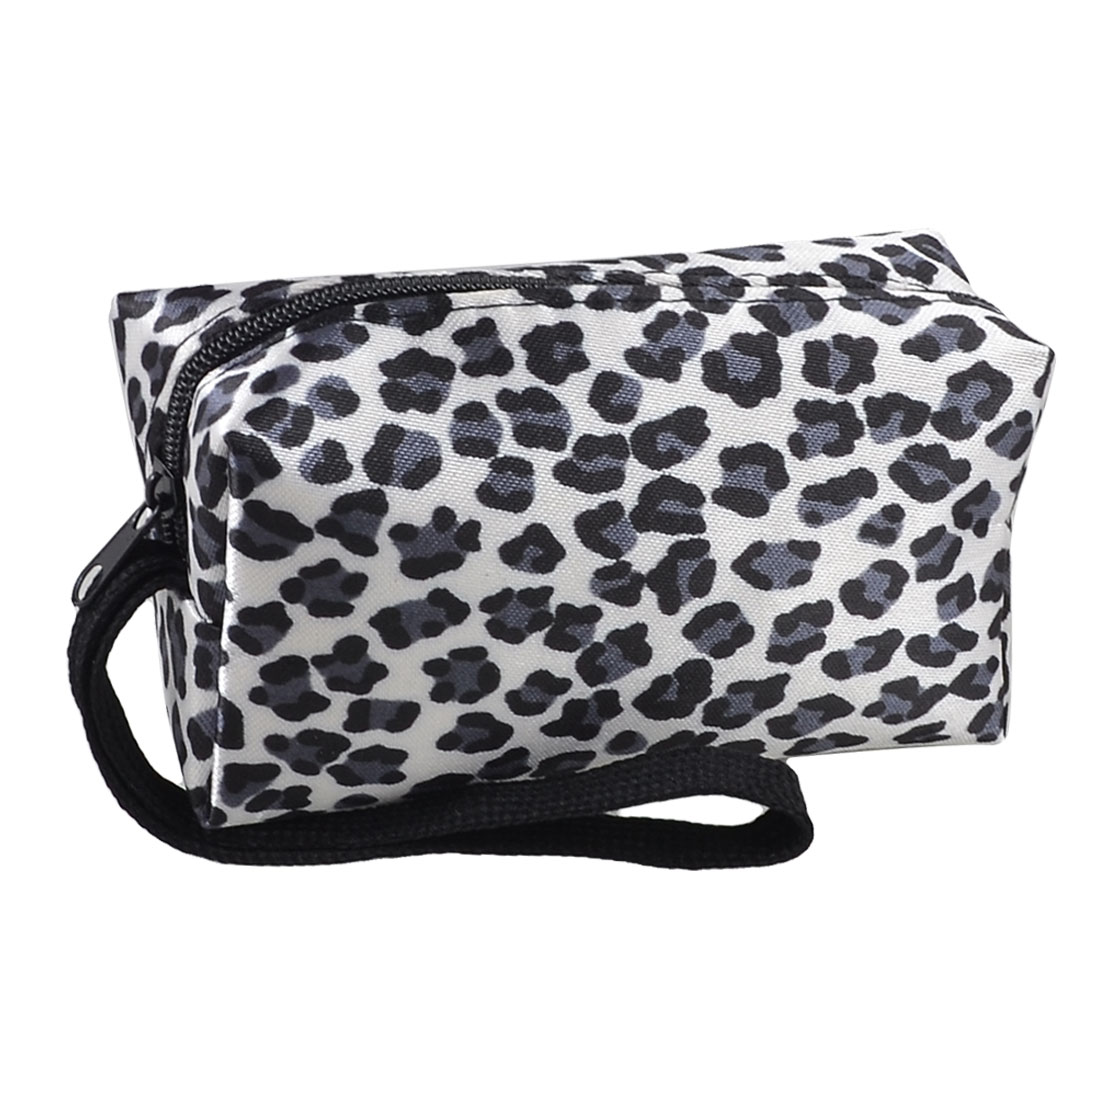 Zipped Closure Black Blue Leopard Print Hand Strap Faux Leather Lining Rectangle Wallet for Lady